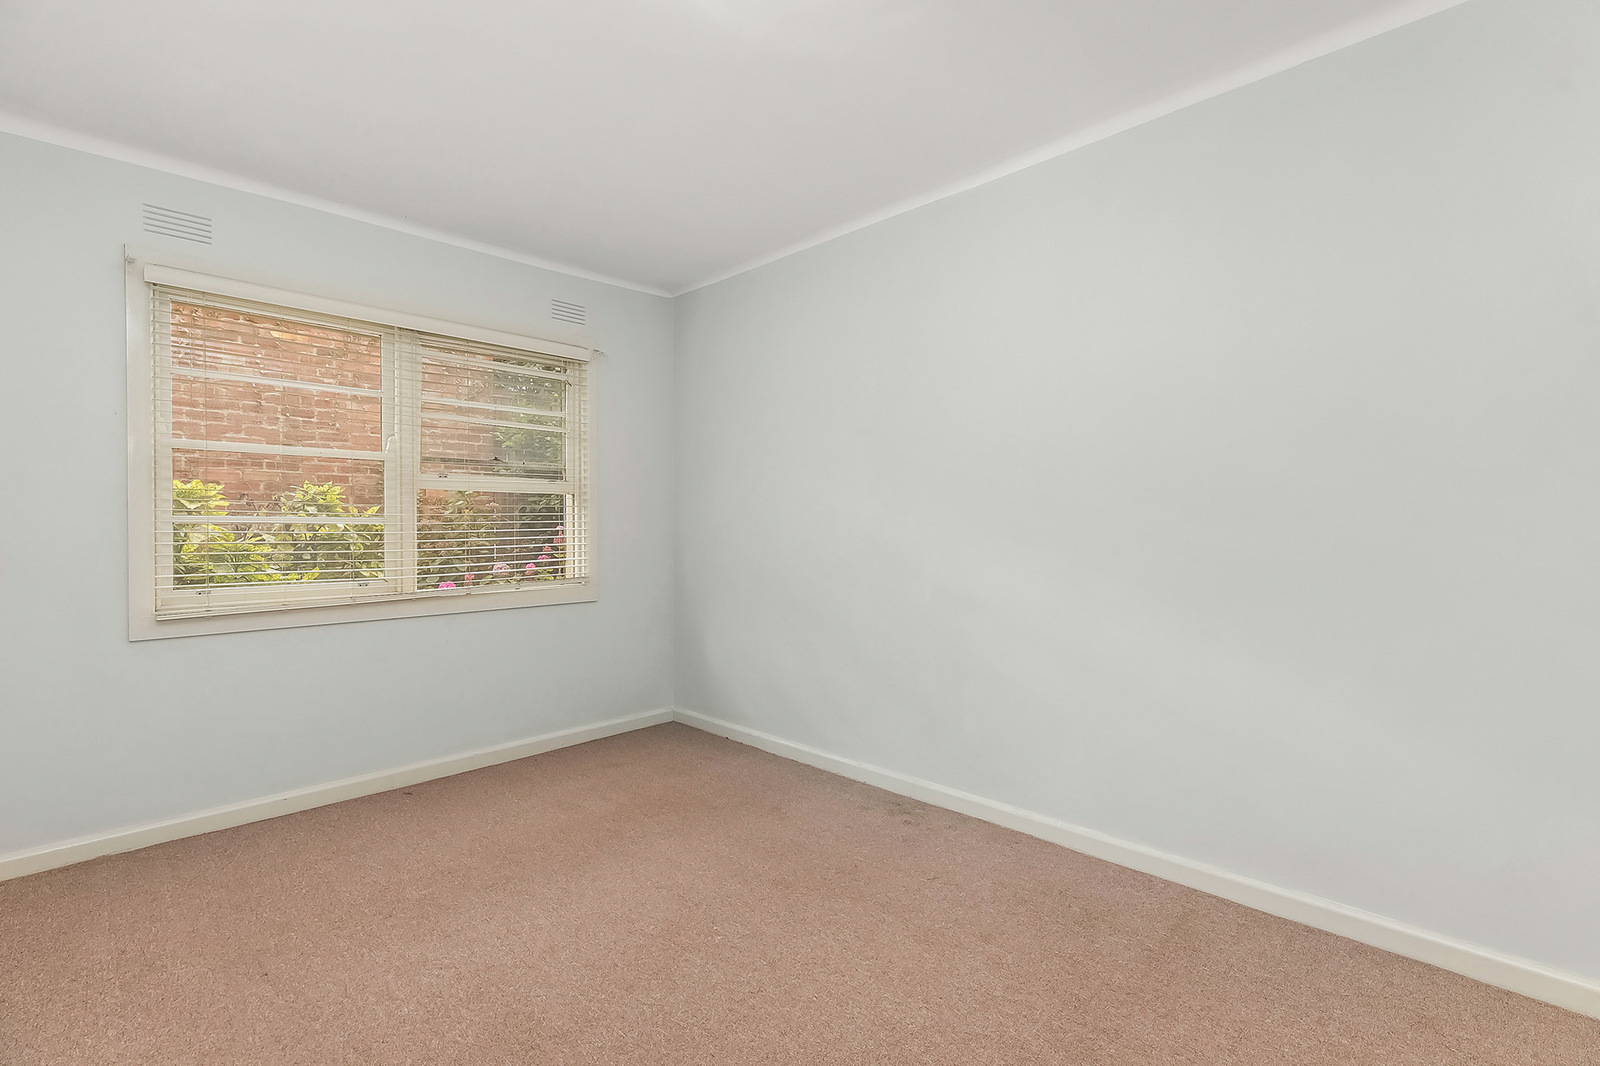 4/169 Ormond Road, Elwood 3184 - Image 2